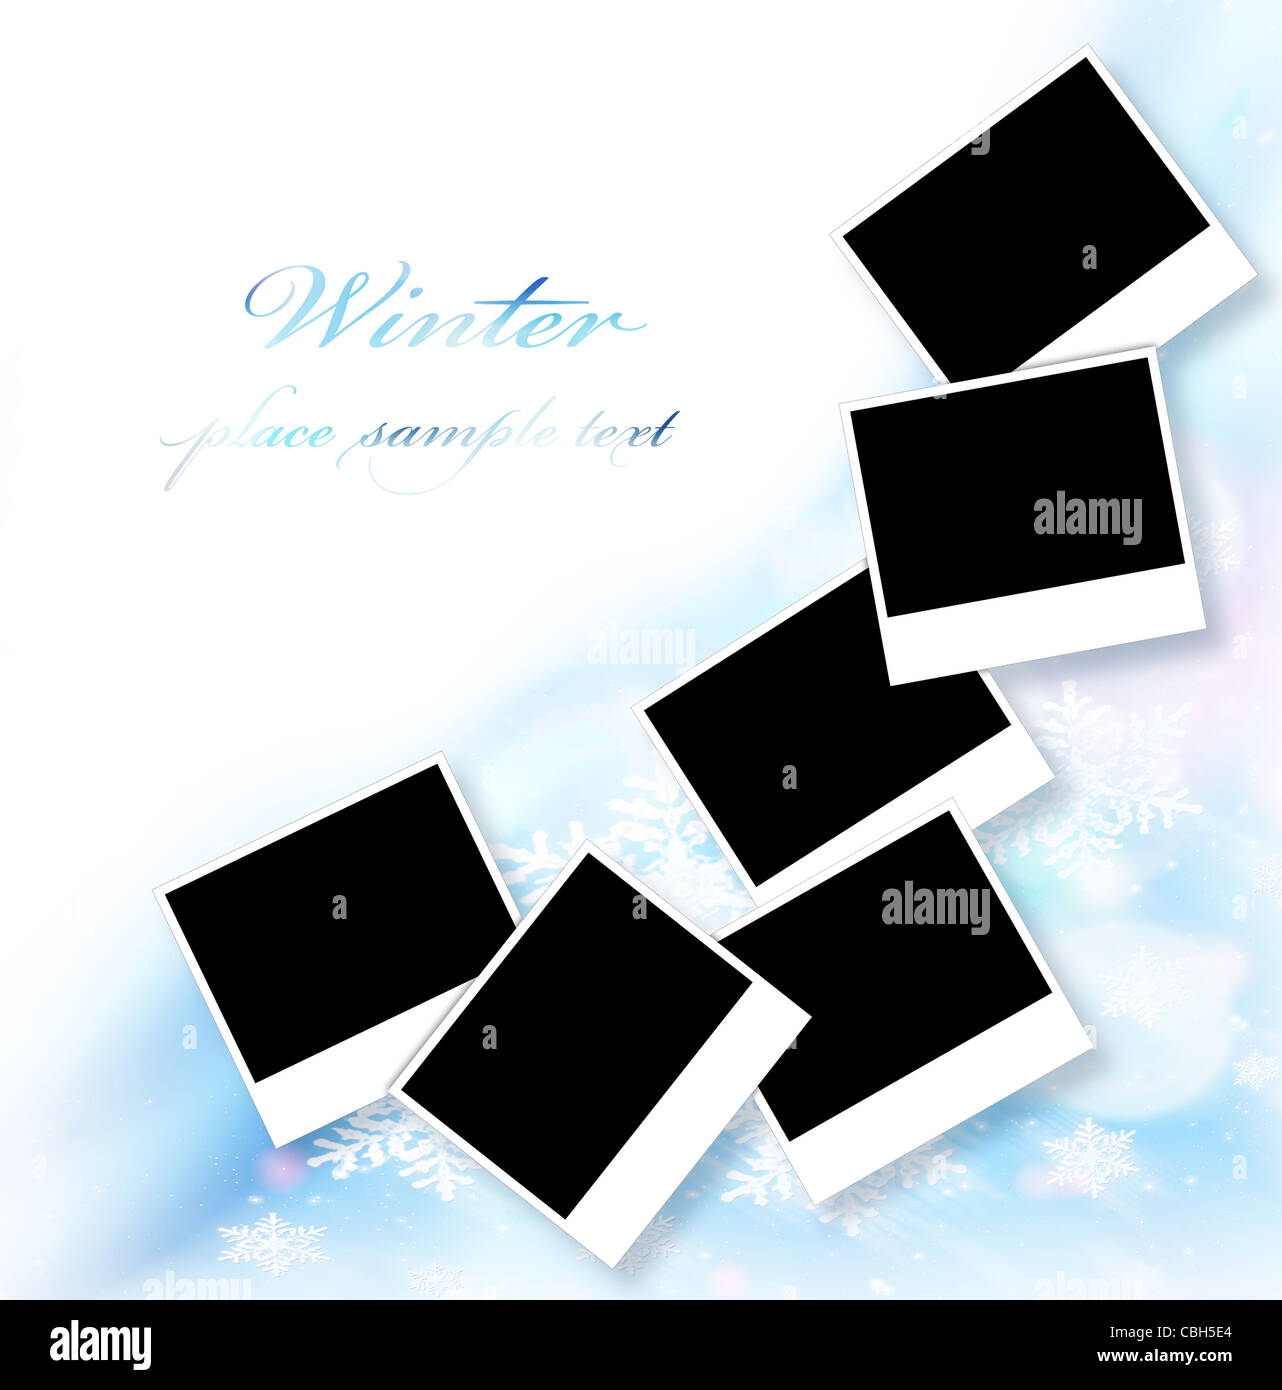 Blank picture frames abstract snowflake decorative border blue blank picture frames abstract snowflake decorative border blue ornamental design with white text space many empty photo jeuxipadfo Gallery